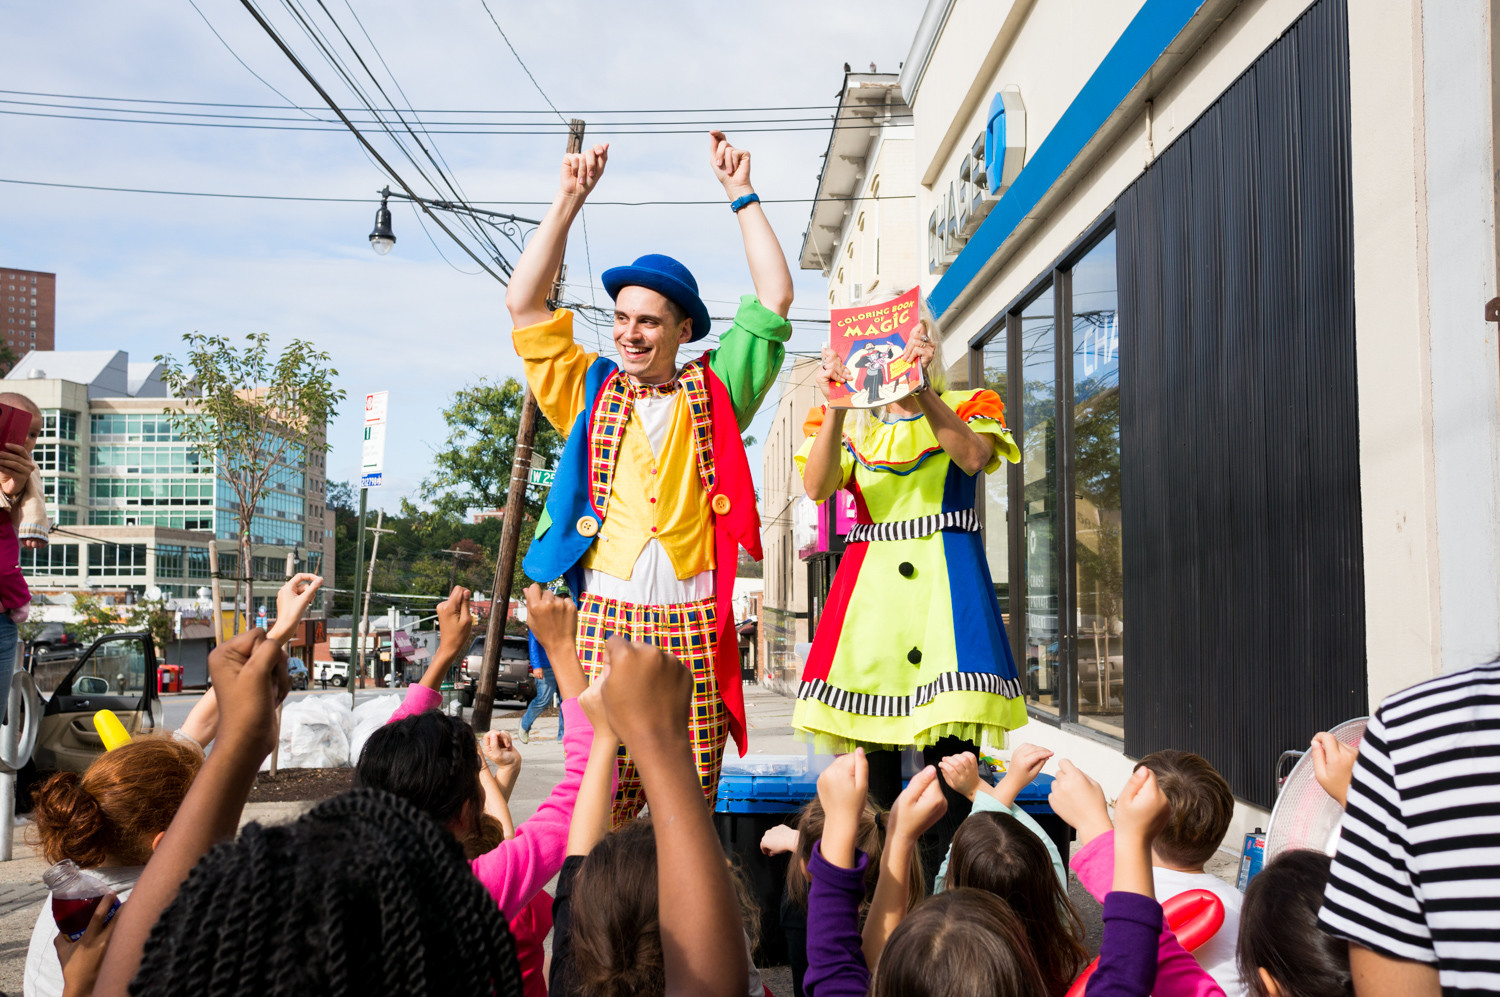 Addeo's Riverdale Pizza brought in clowns to entertain its youngest clientele during its customer appreciation day. The clowns introduce neighborhood kids to the 'Coloring Book of Magic.'